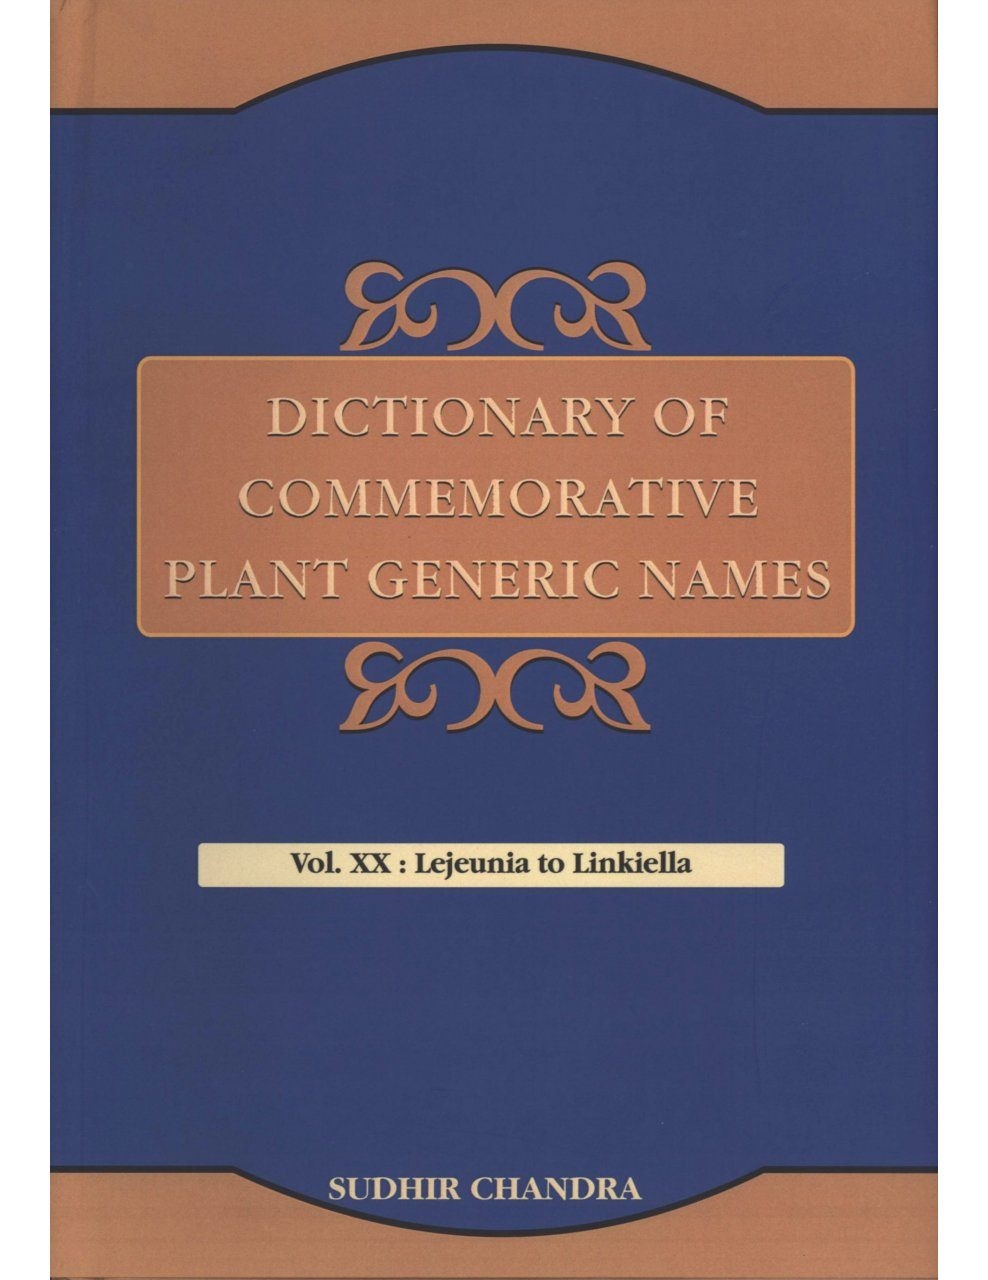 Dictionary of Commemorative Plant Generic Names, Volume 20: Lejeunia to Linkiella